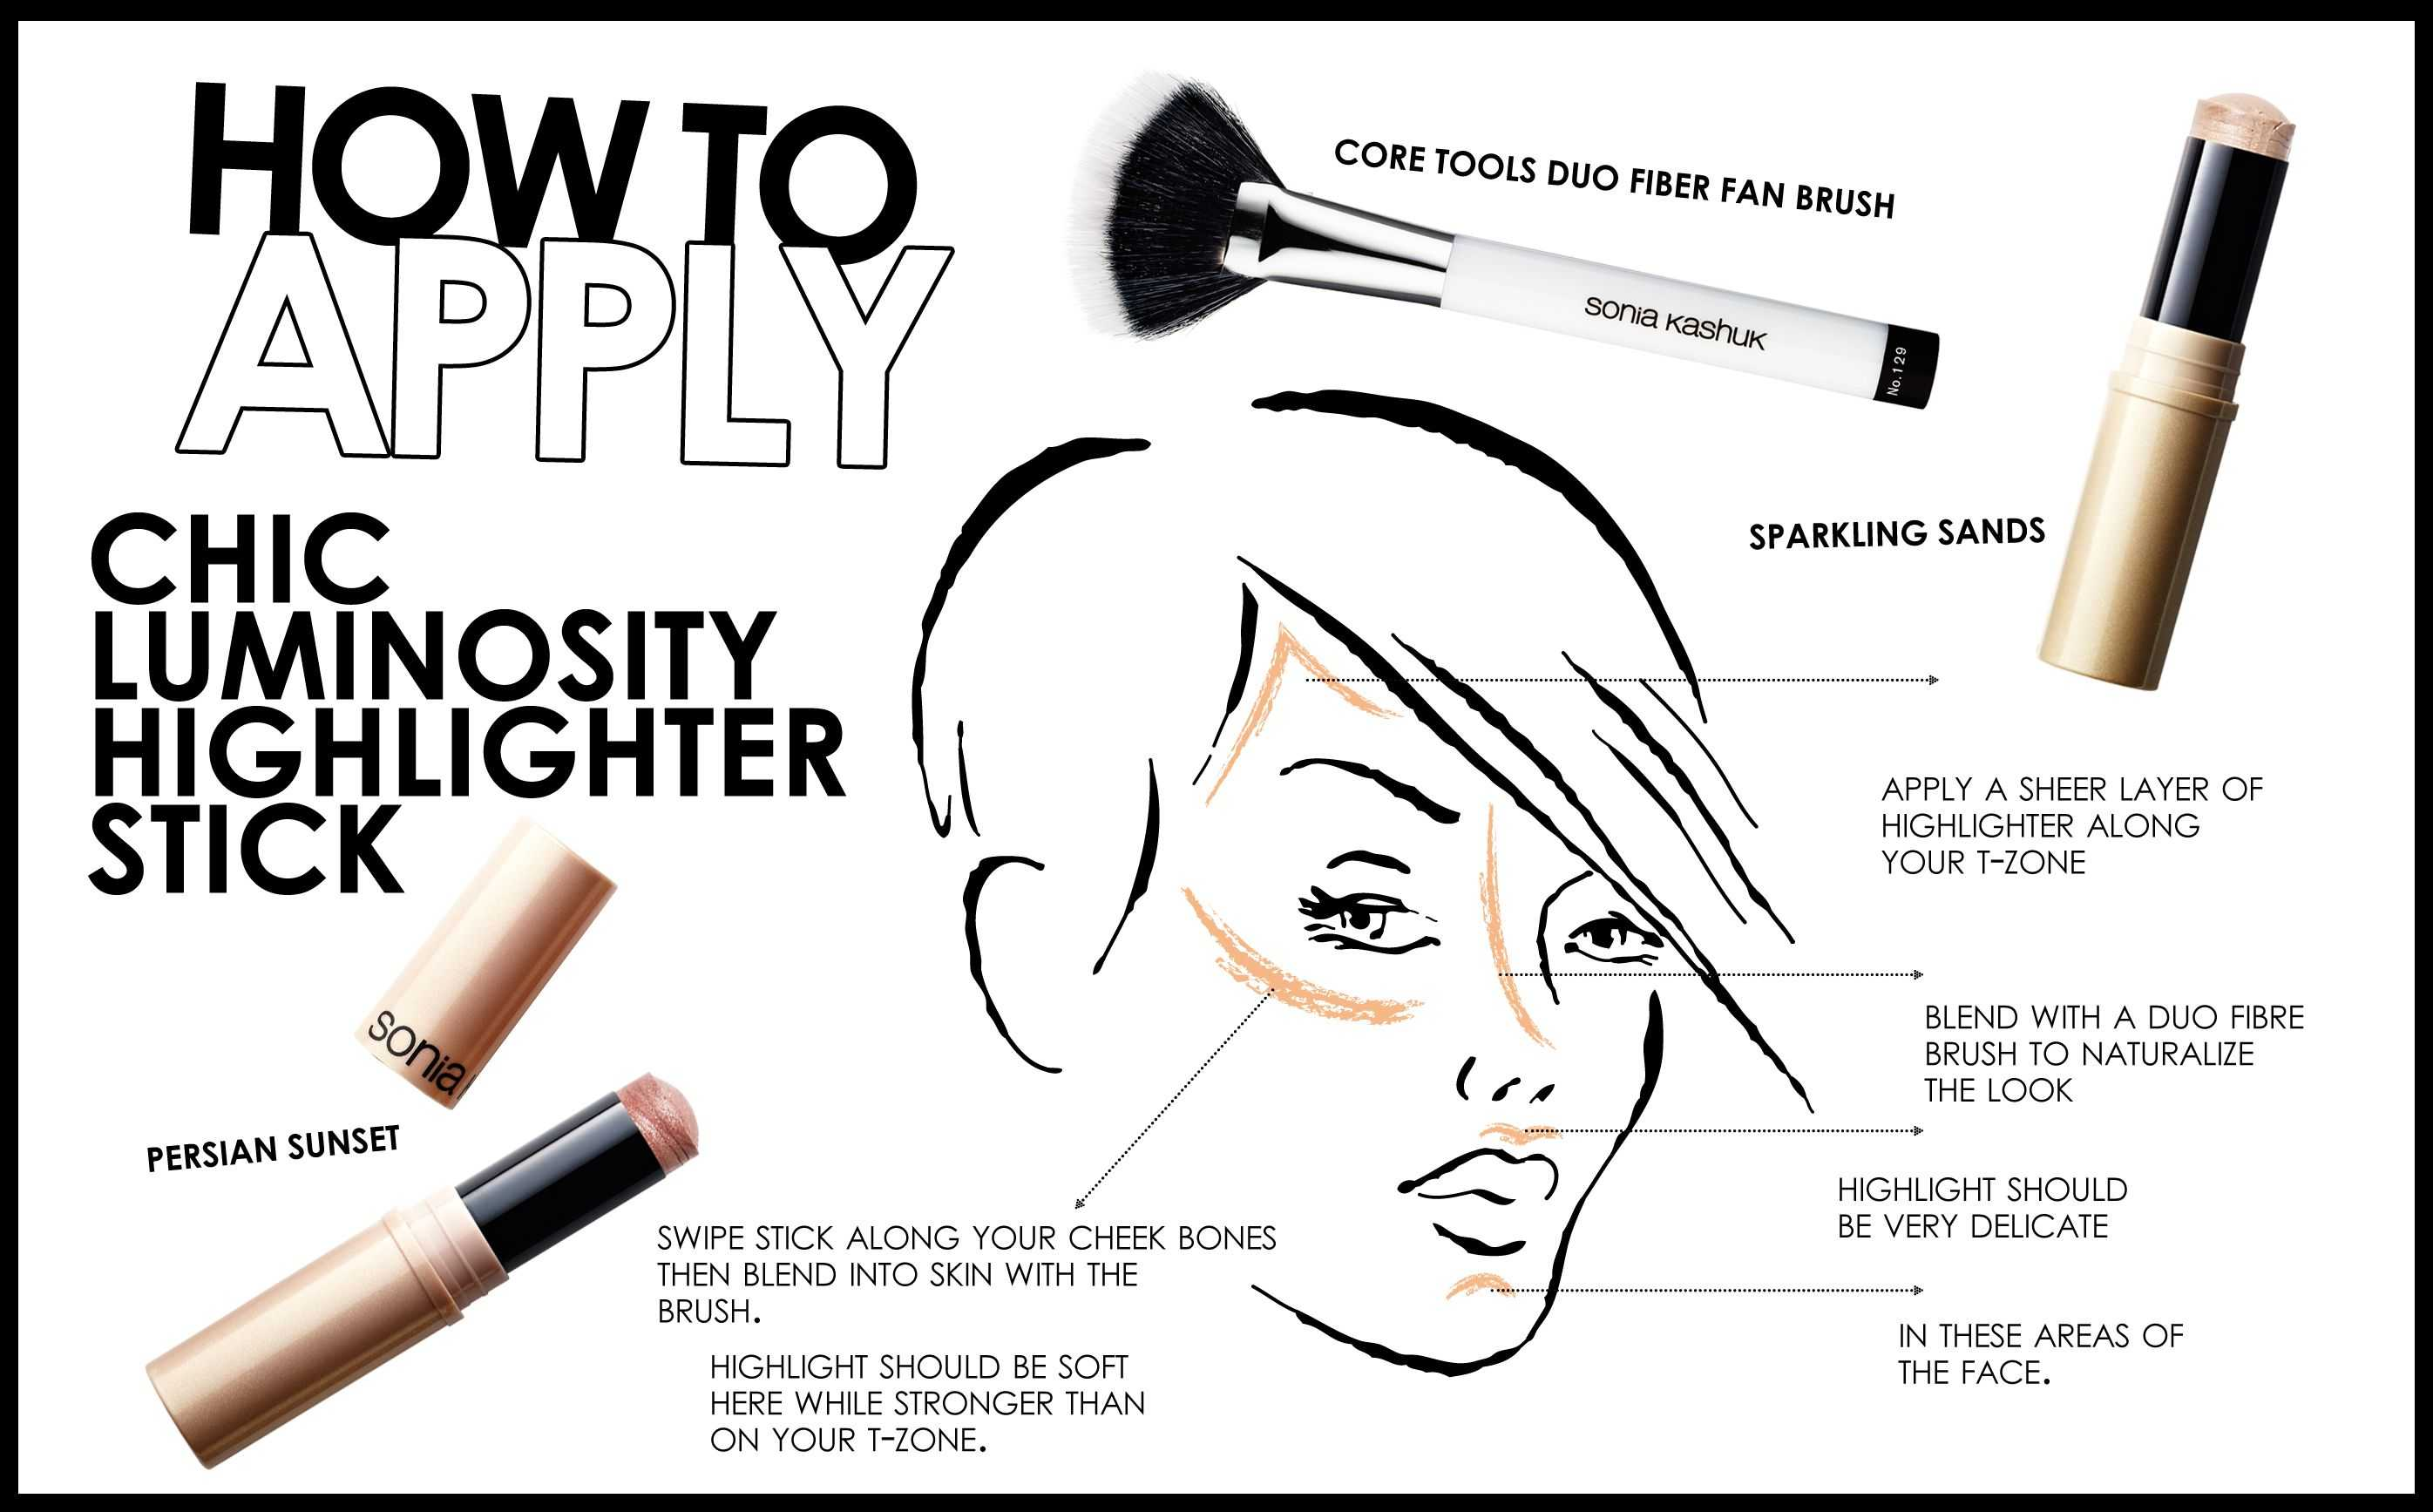 How To Apply Chic Luminosity Highlighter Stick